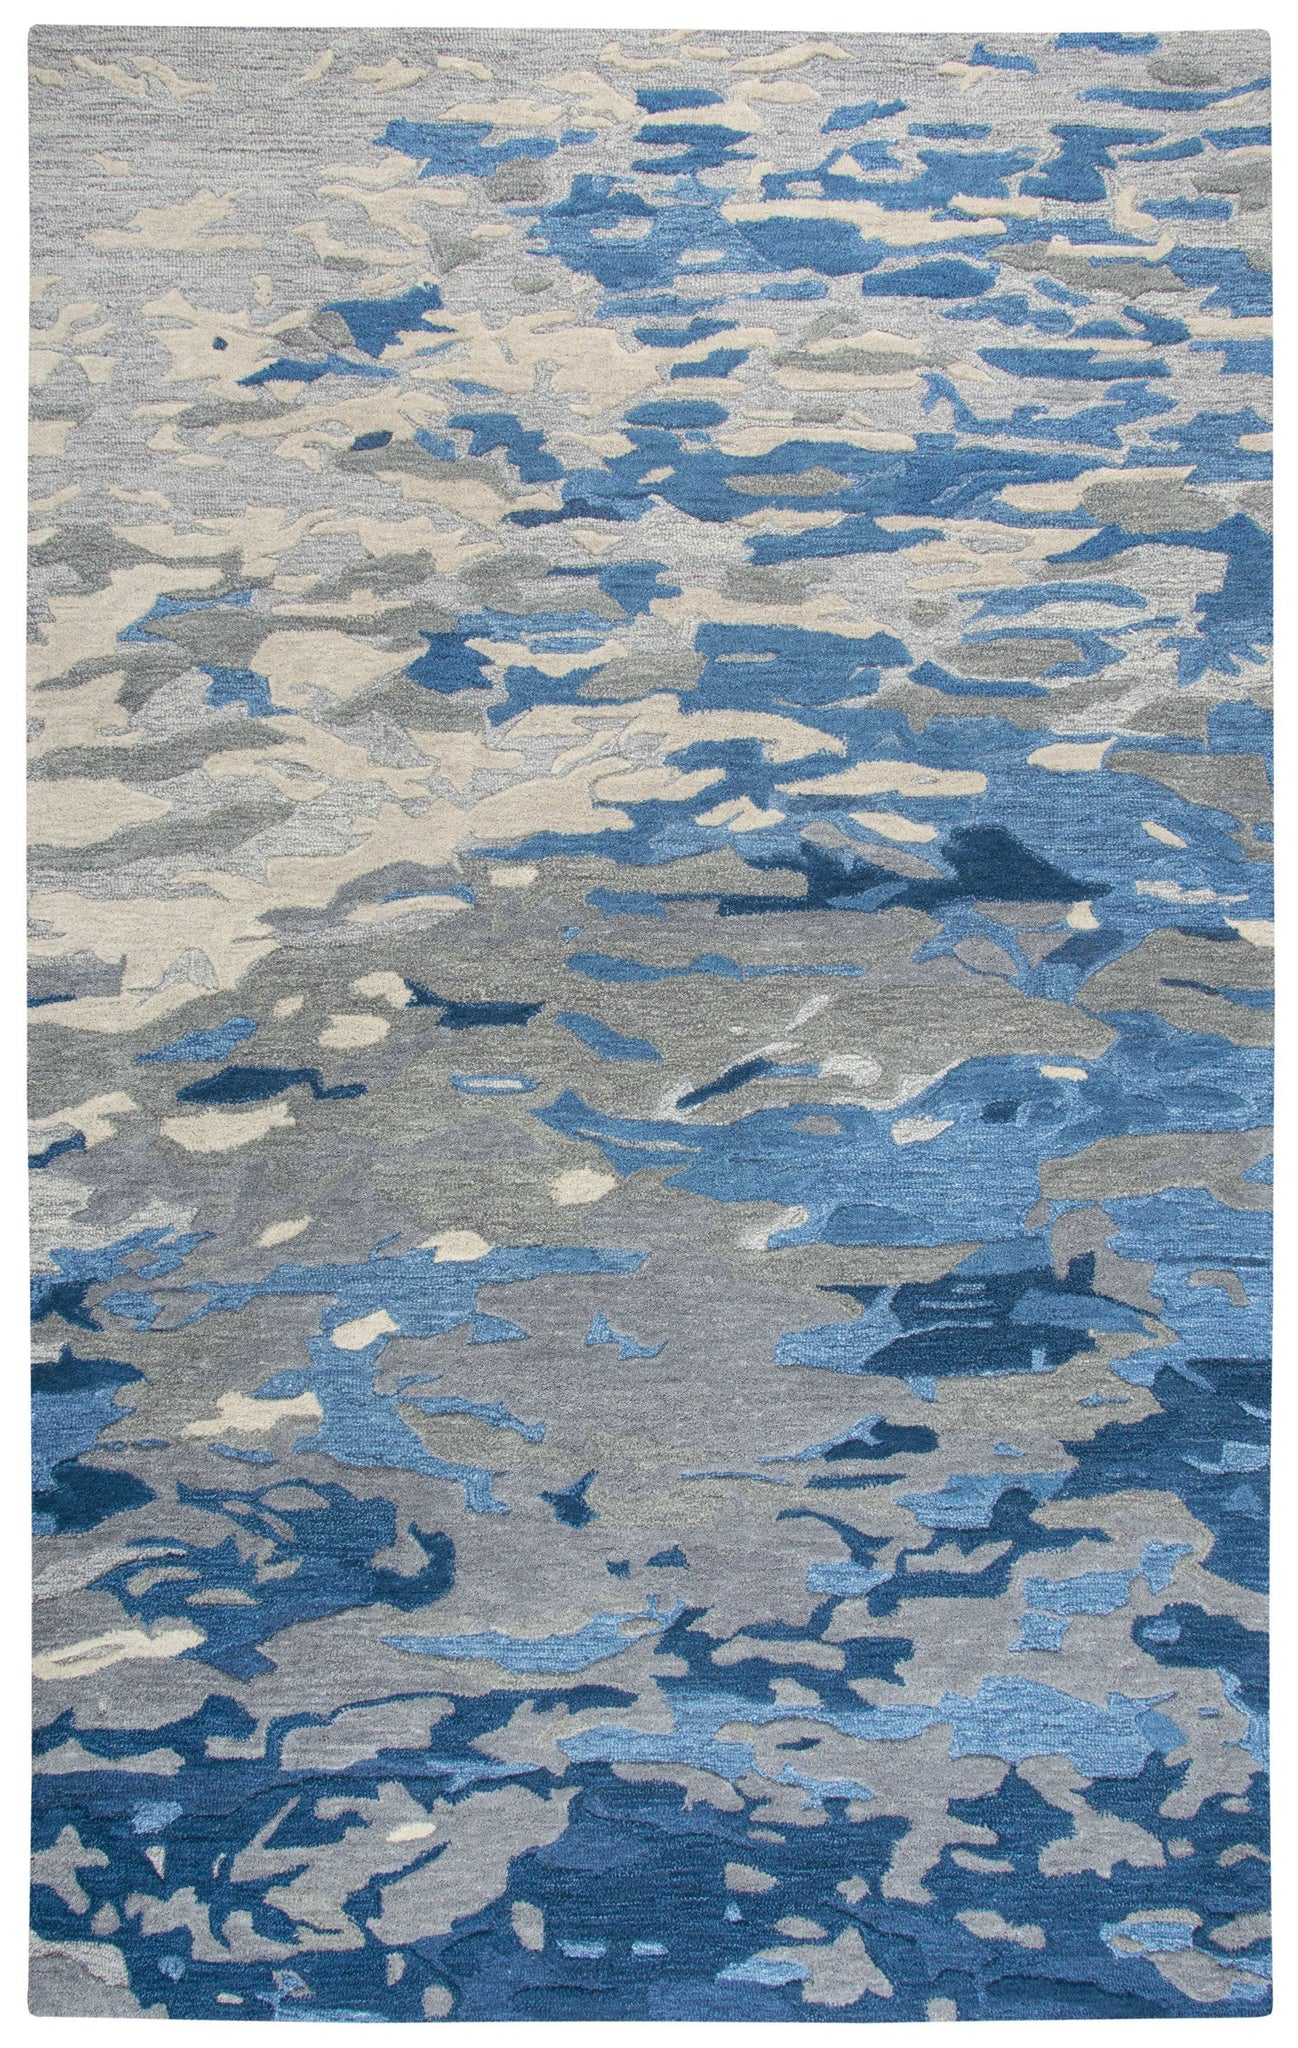 Rizzy Home Area Rugs Vogue Area Rugs  VOG108 Blue Wool Contemporary Design in 5 Sizes